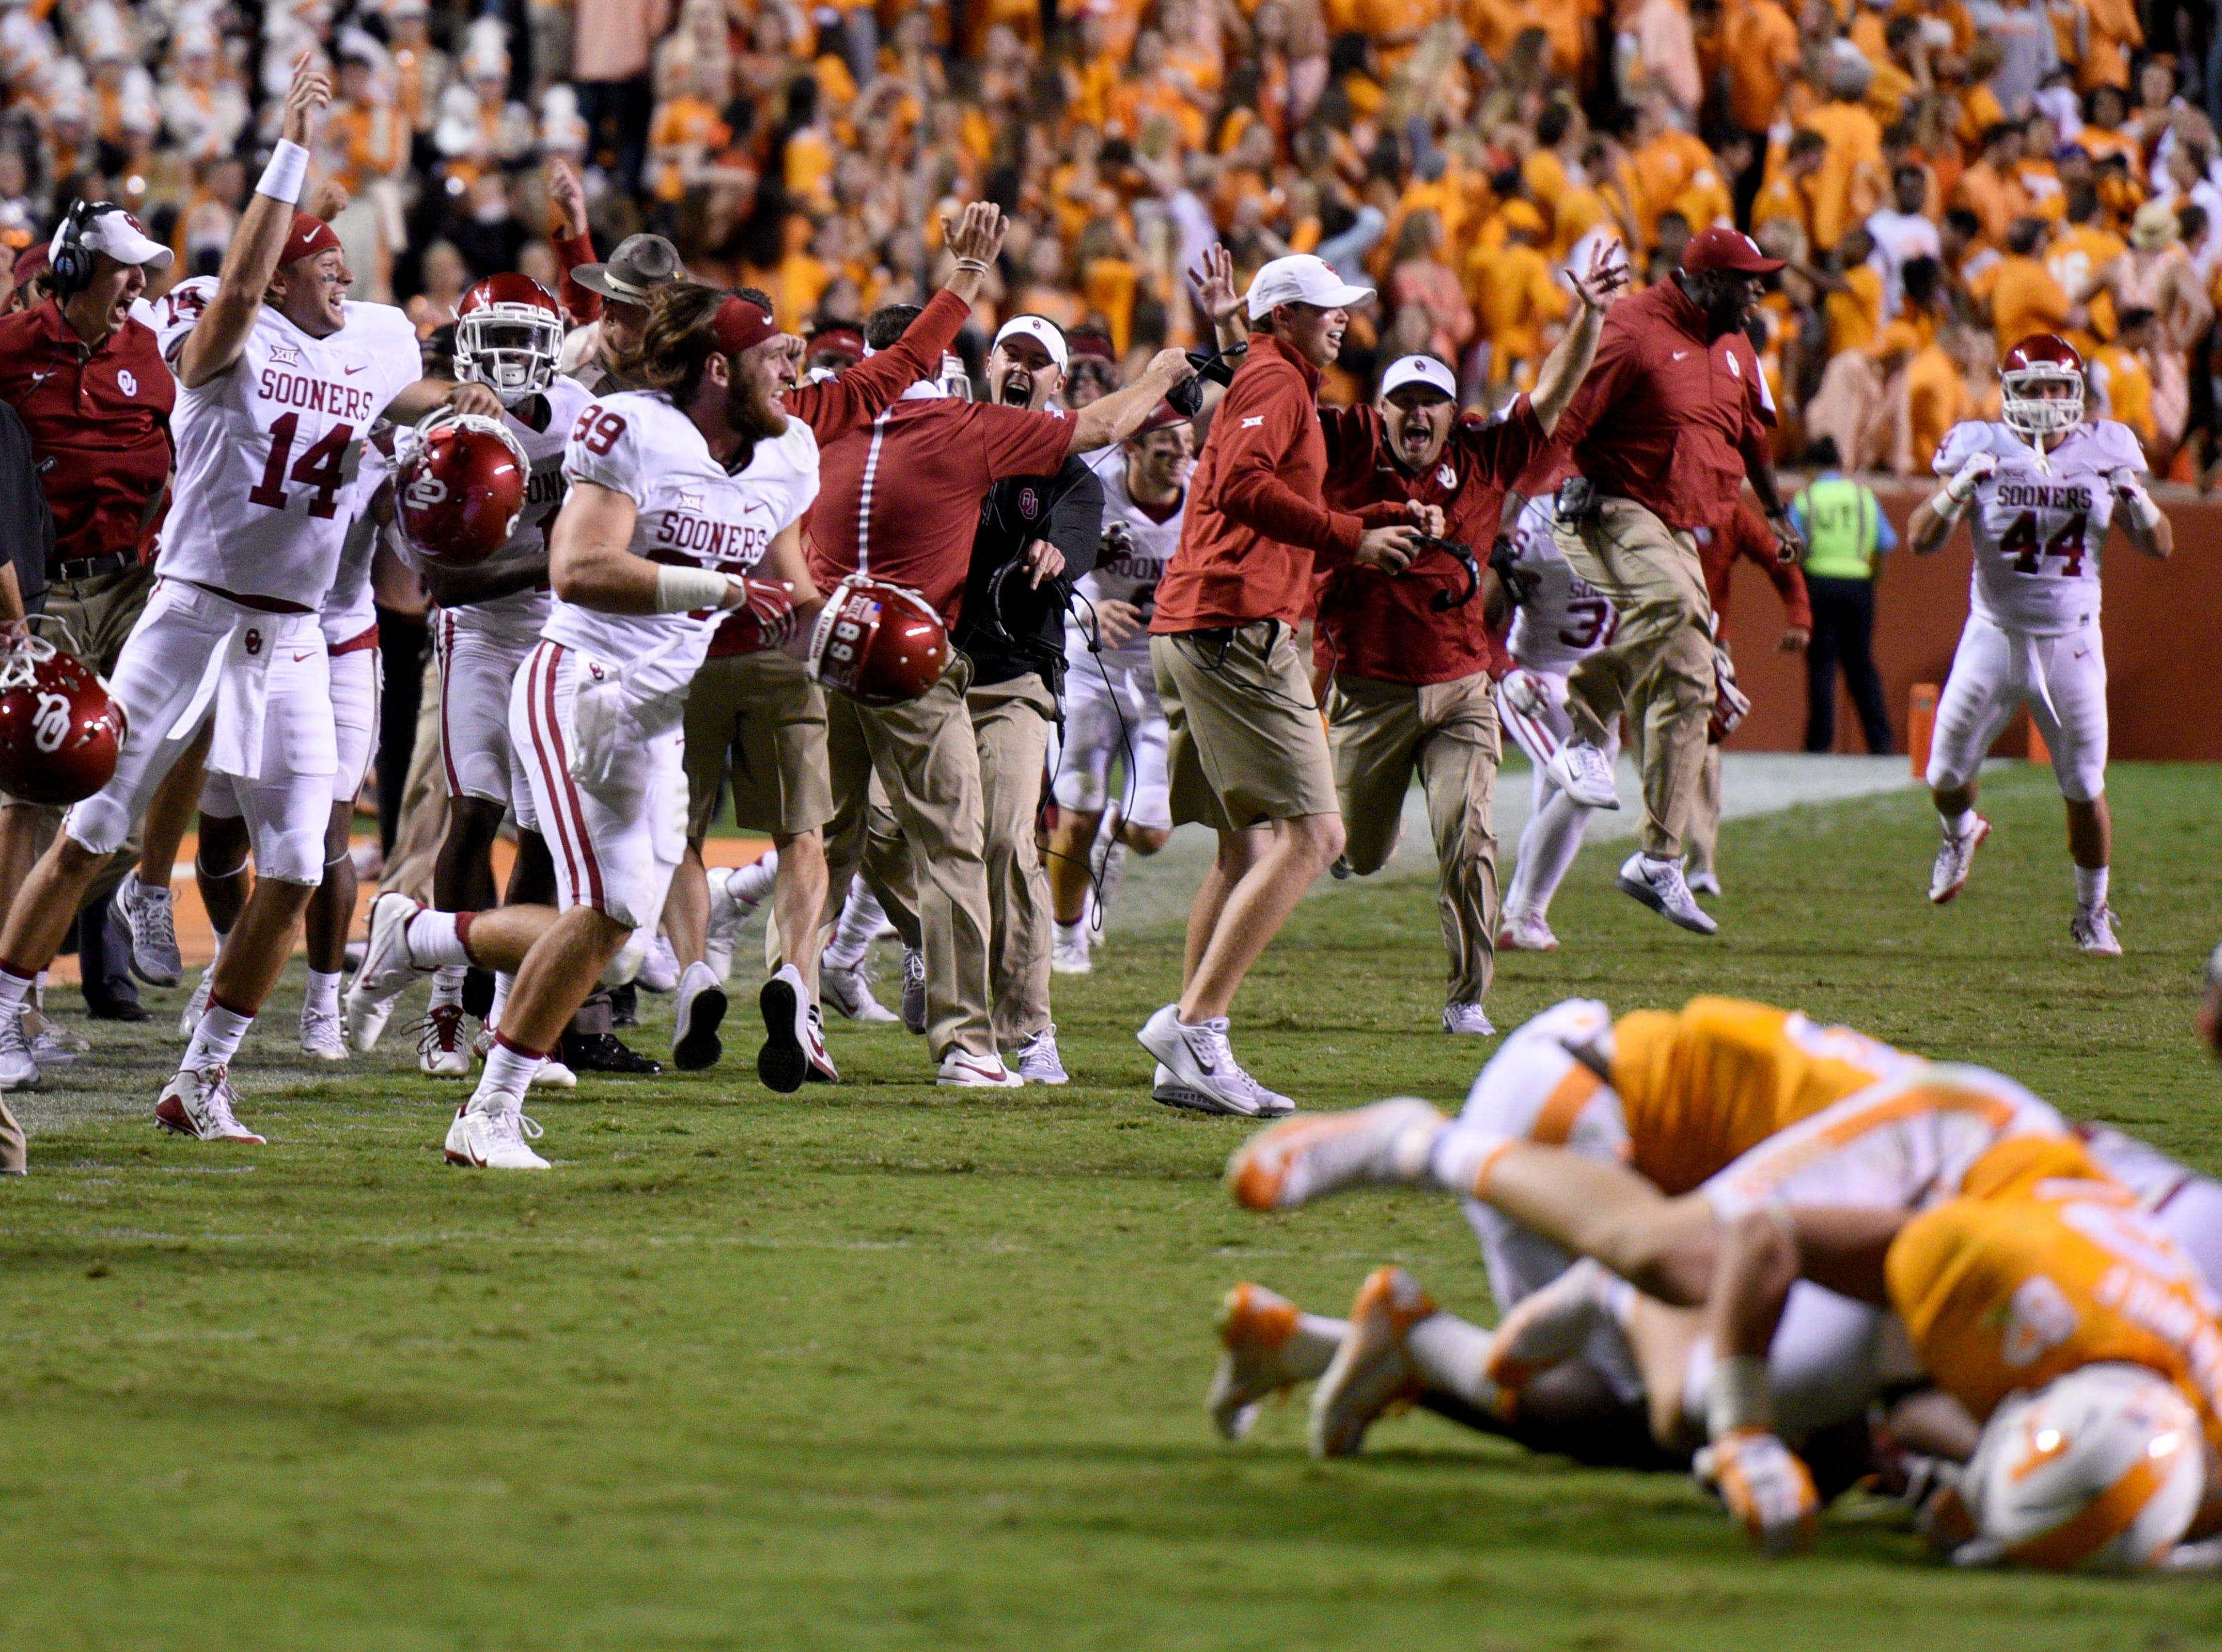 Oklahoma players and coaches celebrate after a 31-24 victory in overtime at Neyland Stadium on Saturday, Sept. 12, 2015 in Knoxville, Tenn.